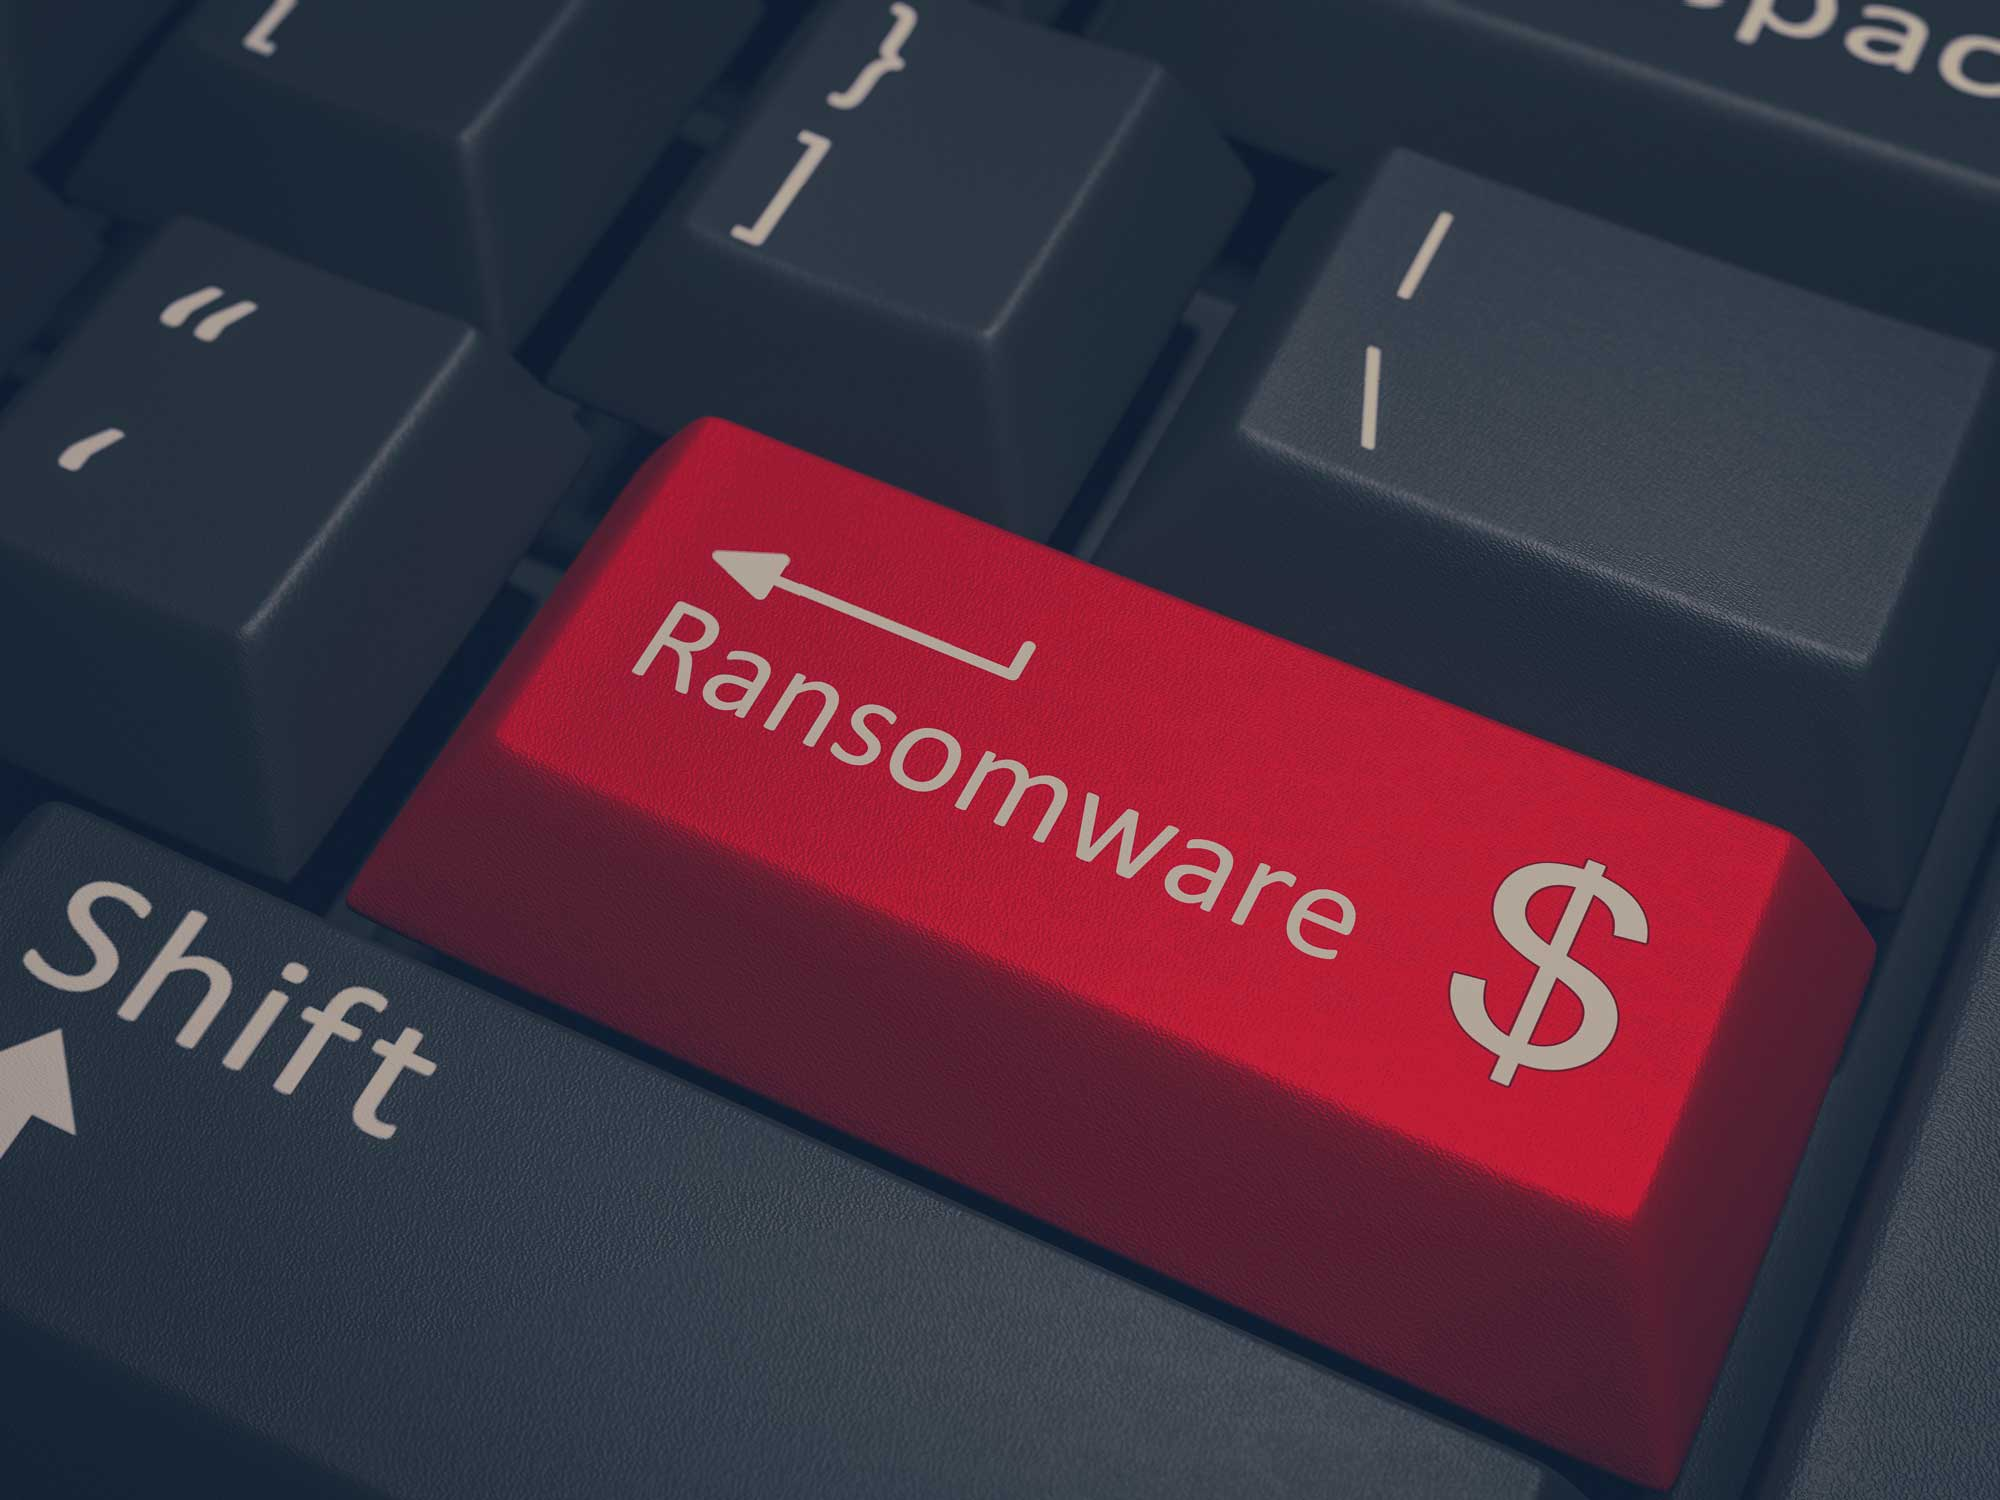 Healthcare Ransomware: The Threat You Should Be Concerned About [Infographic]